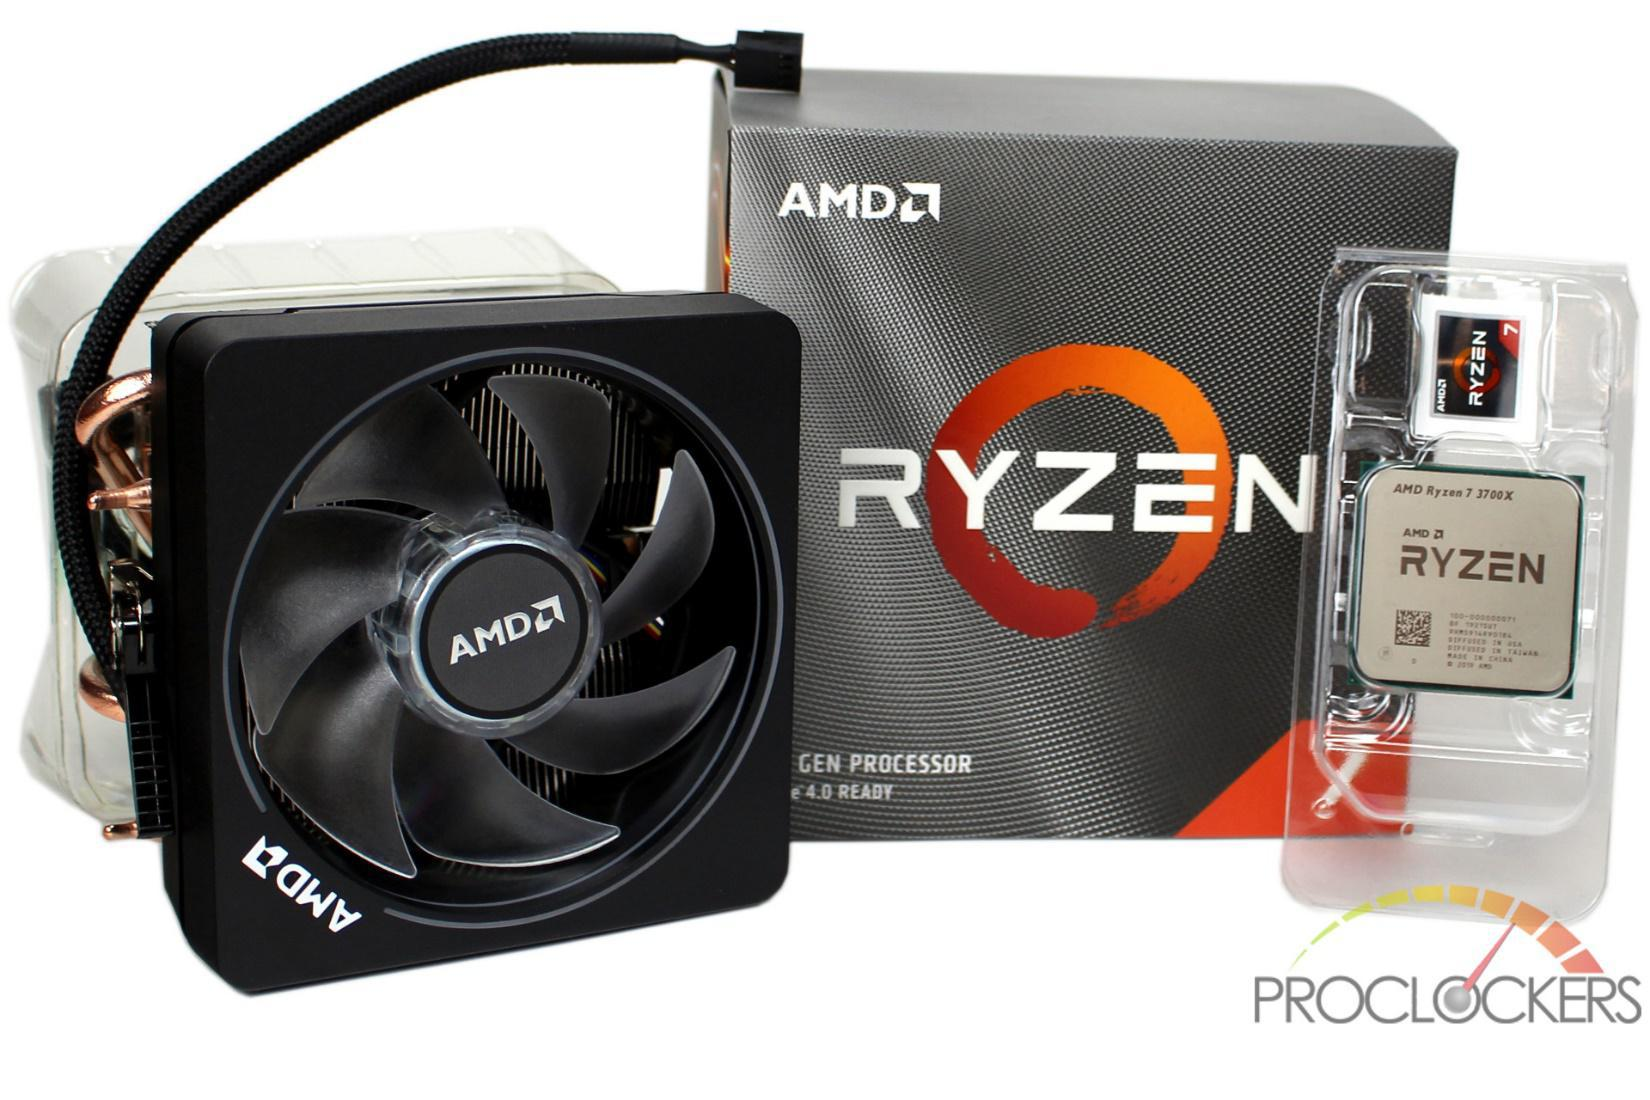 Amd Ryzen 7 3700x Am4 Cpu Review Proclockers